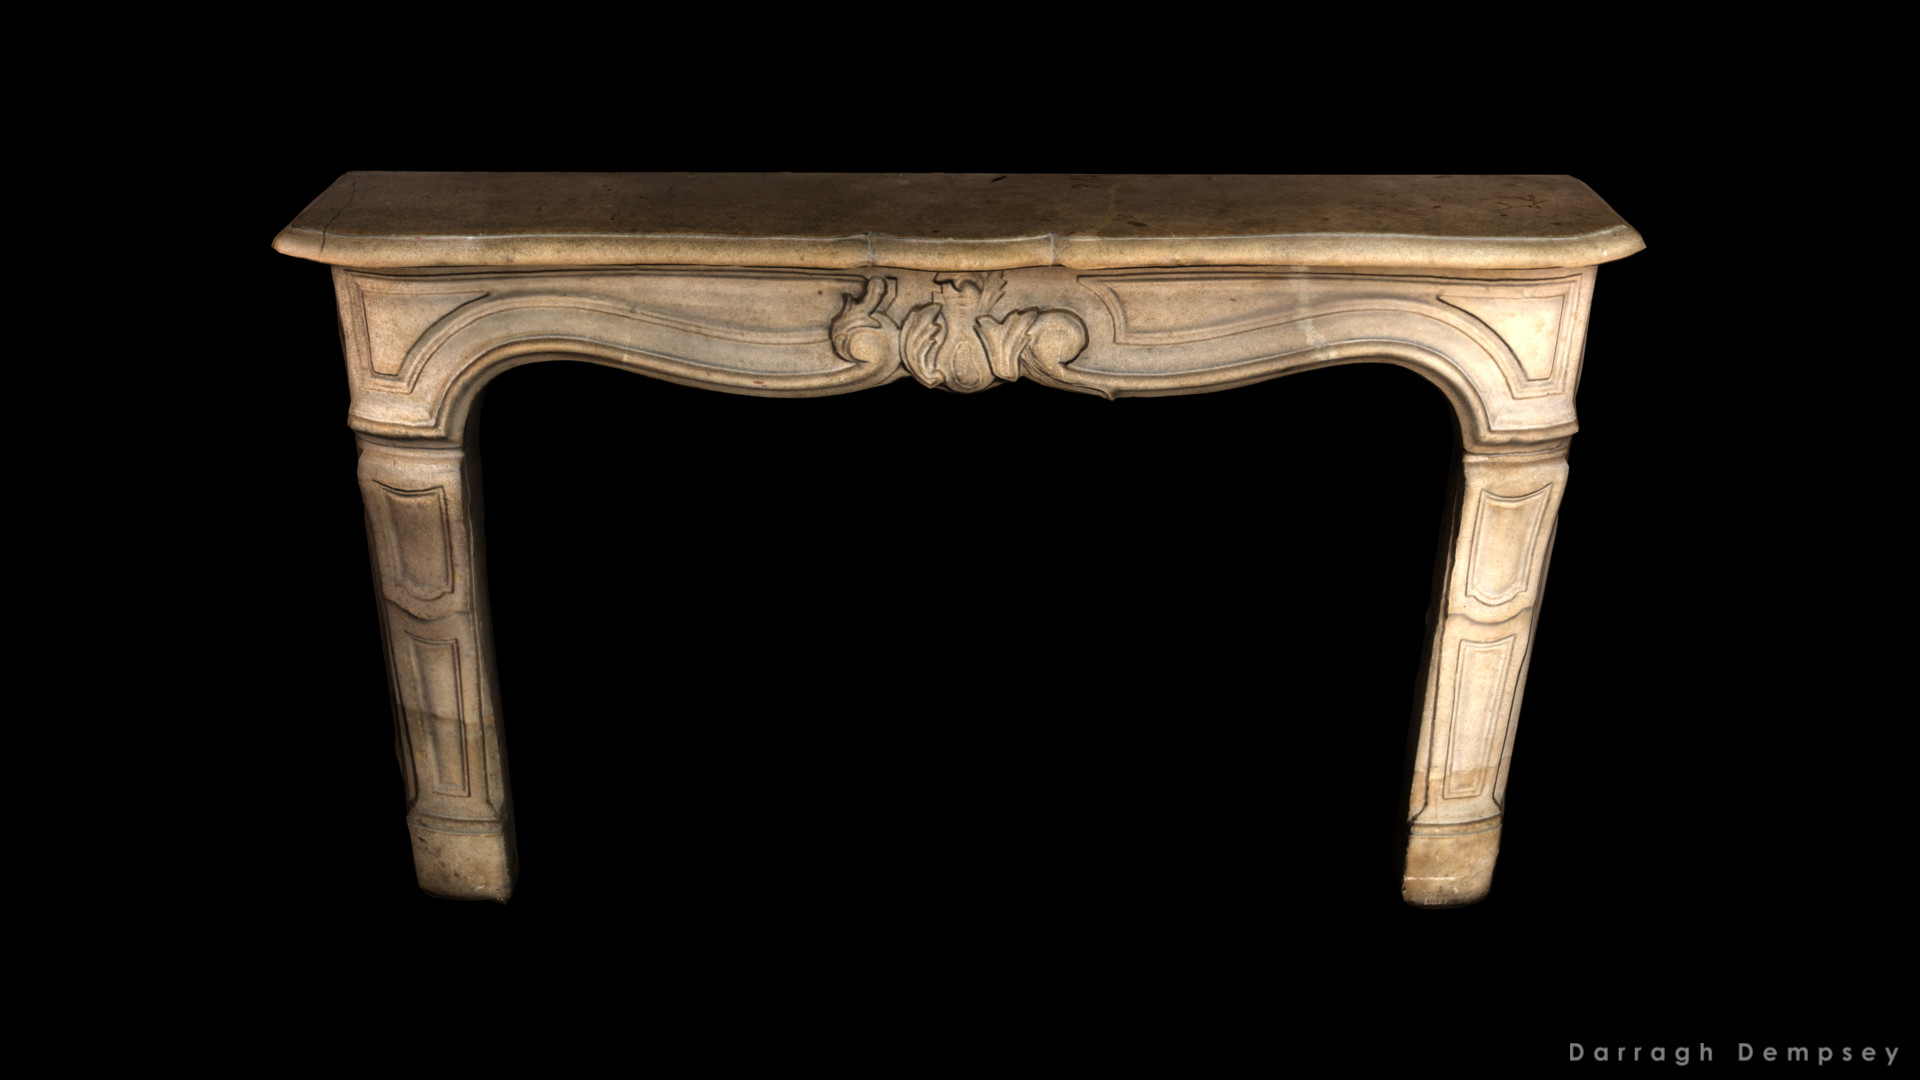 Sandstone fireplace low-poly model. captured with with a Canon EOS 100D and created in Agisoft Photoscan. Cleaned up in Zbrush.